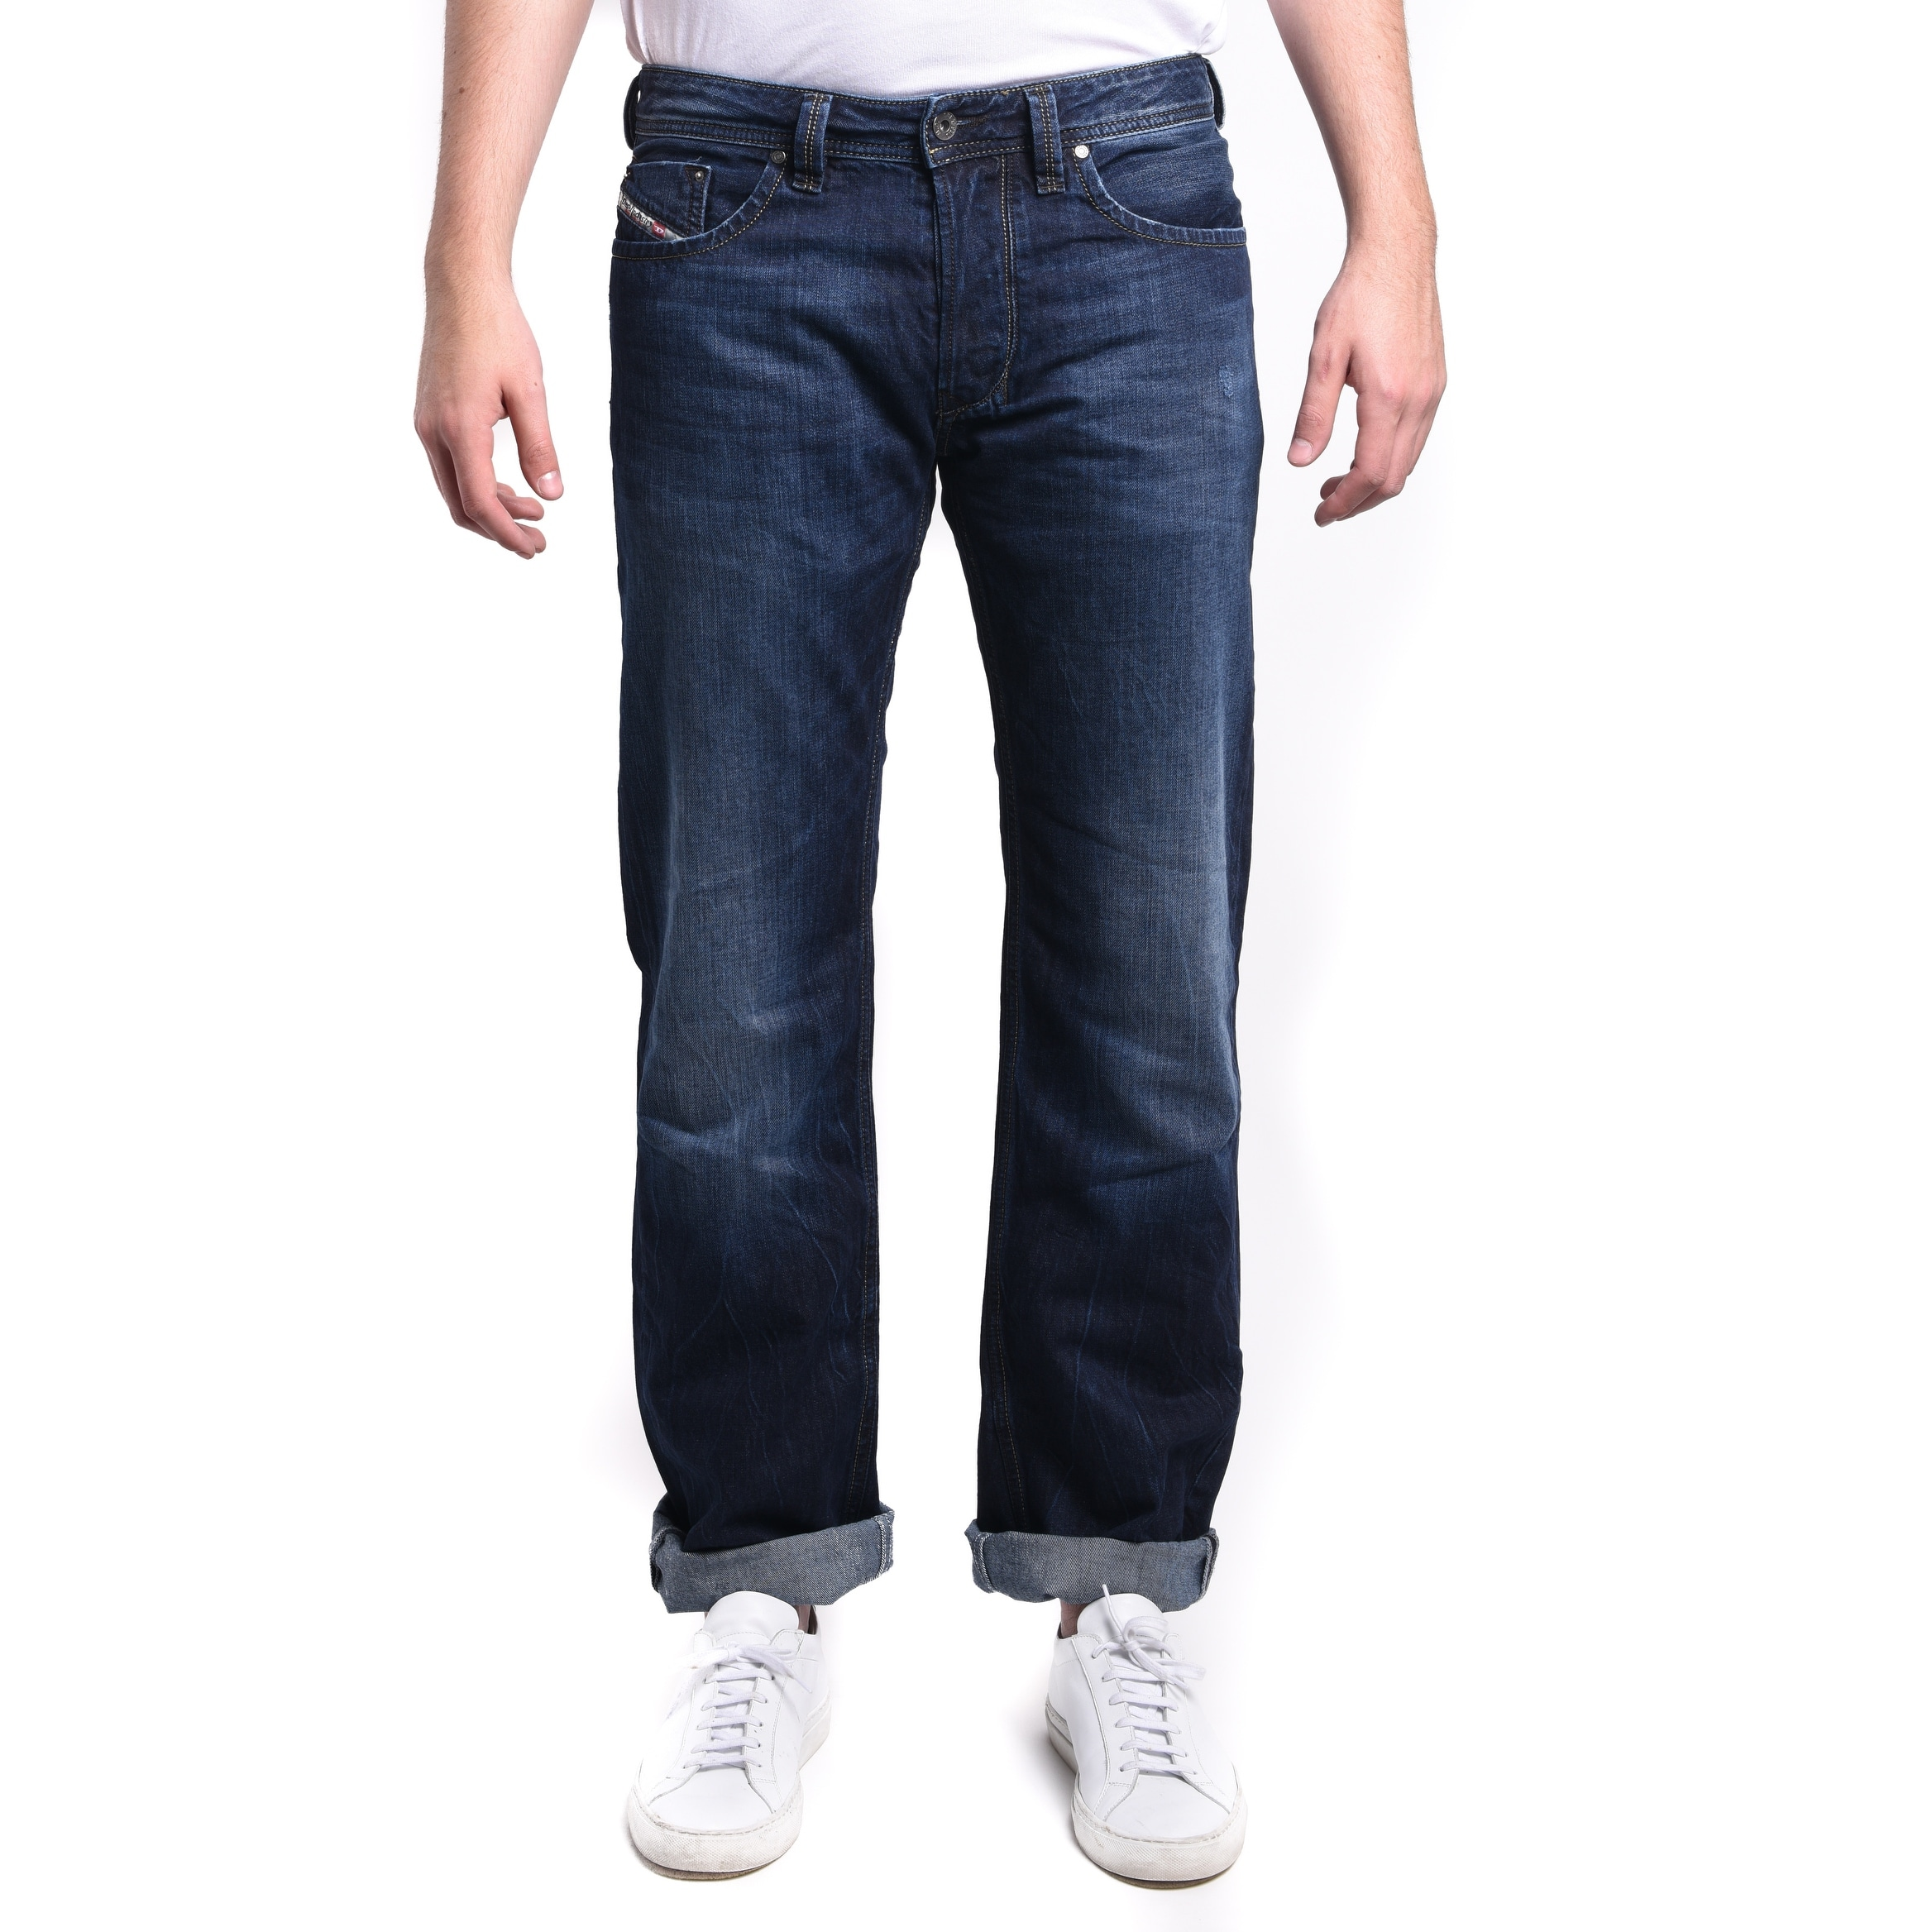 c924ccd6 Shop Diesel Men's Larkee Regular Straight Denim Jeans 0RM80 - Free Shipping  Today - Overstock.com - 13548711